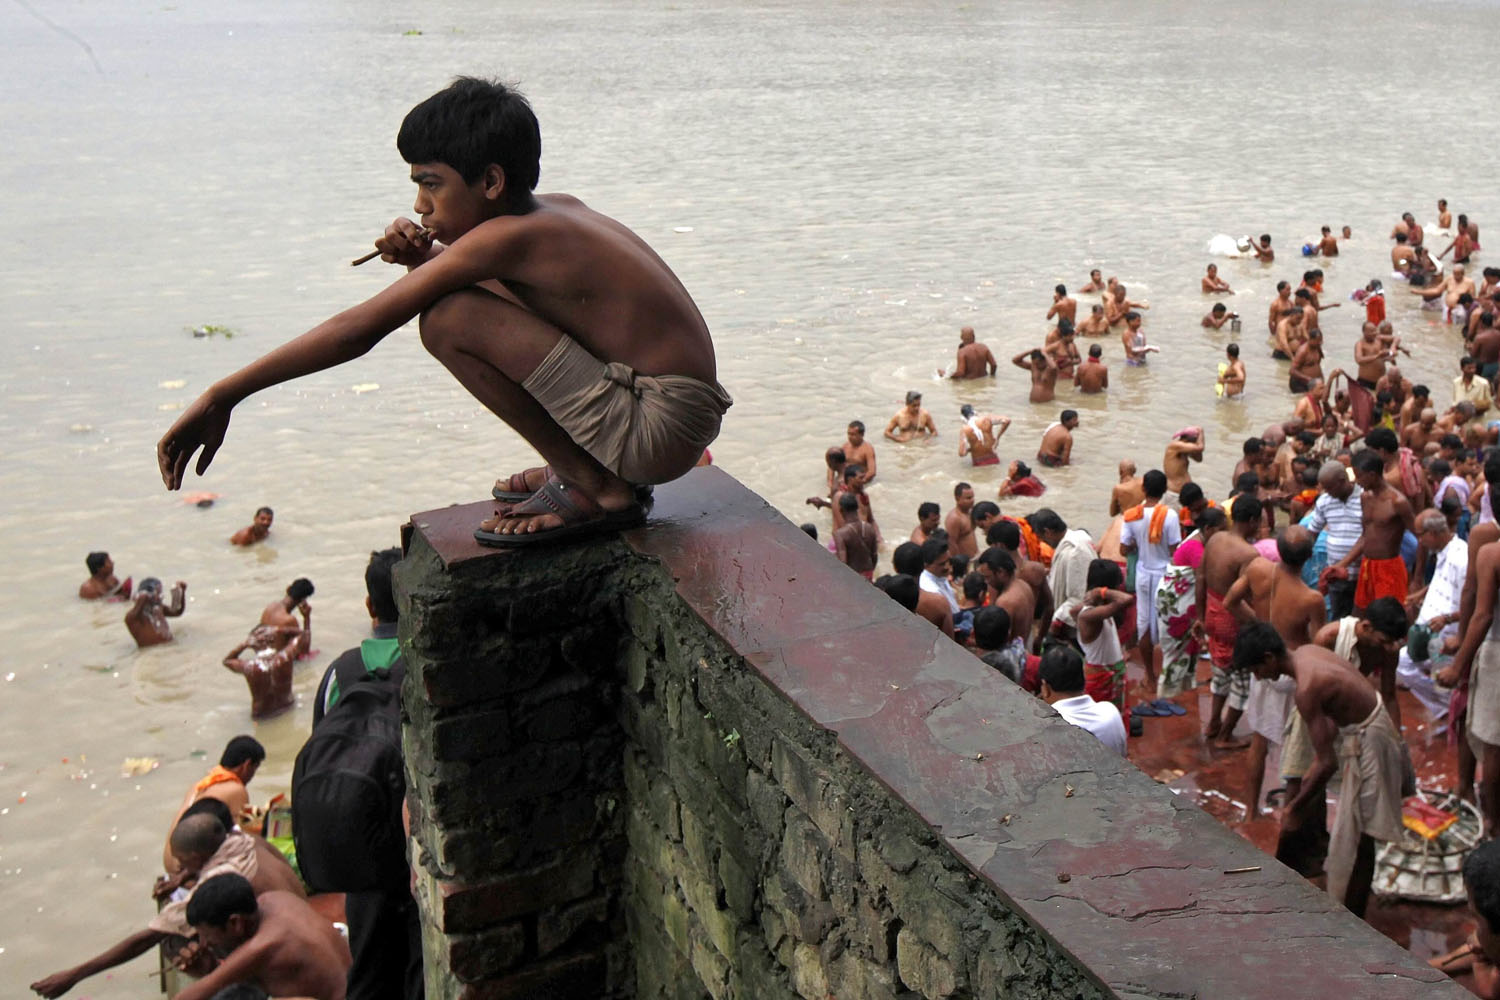 Oct. 4, 2013. A Hindu boy brushes his teeth with a neem twig as others take a dip on the banks of the Ganges river on the holy day of  Mahalaya  in Kolkata, India.